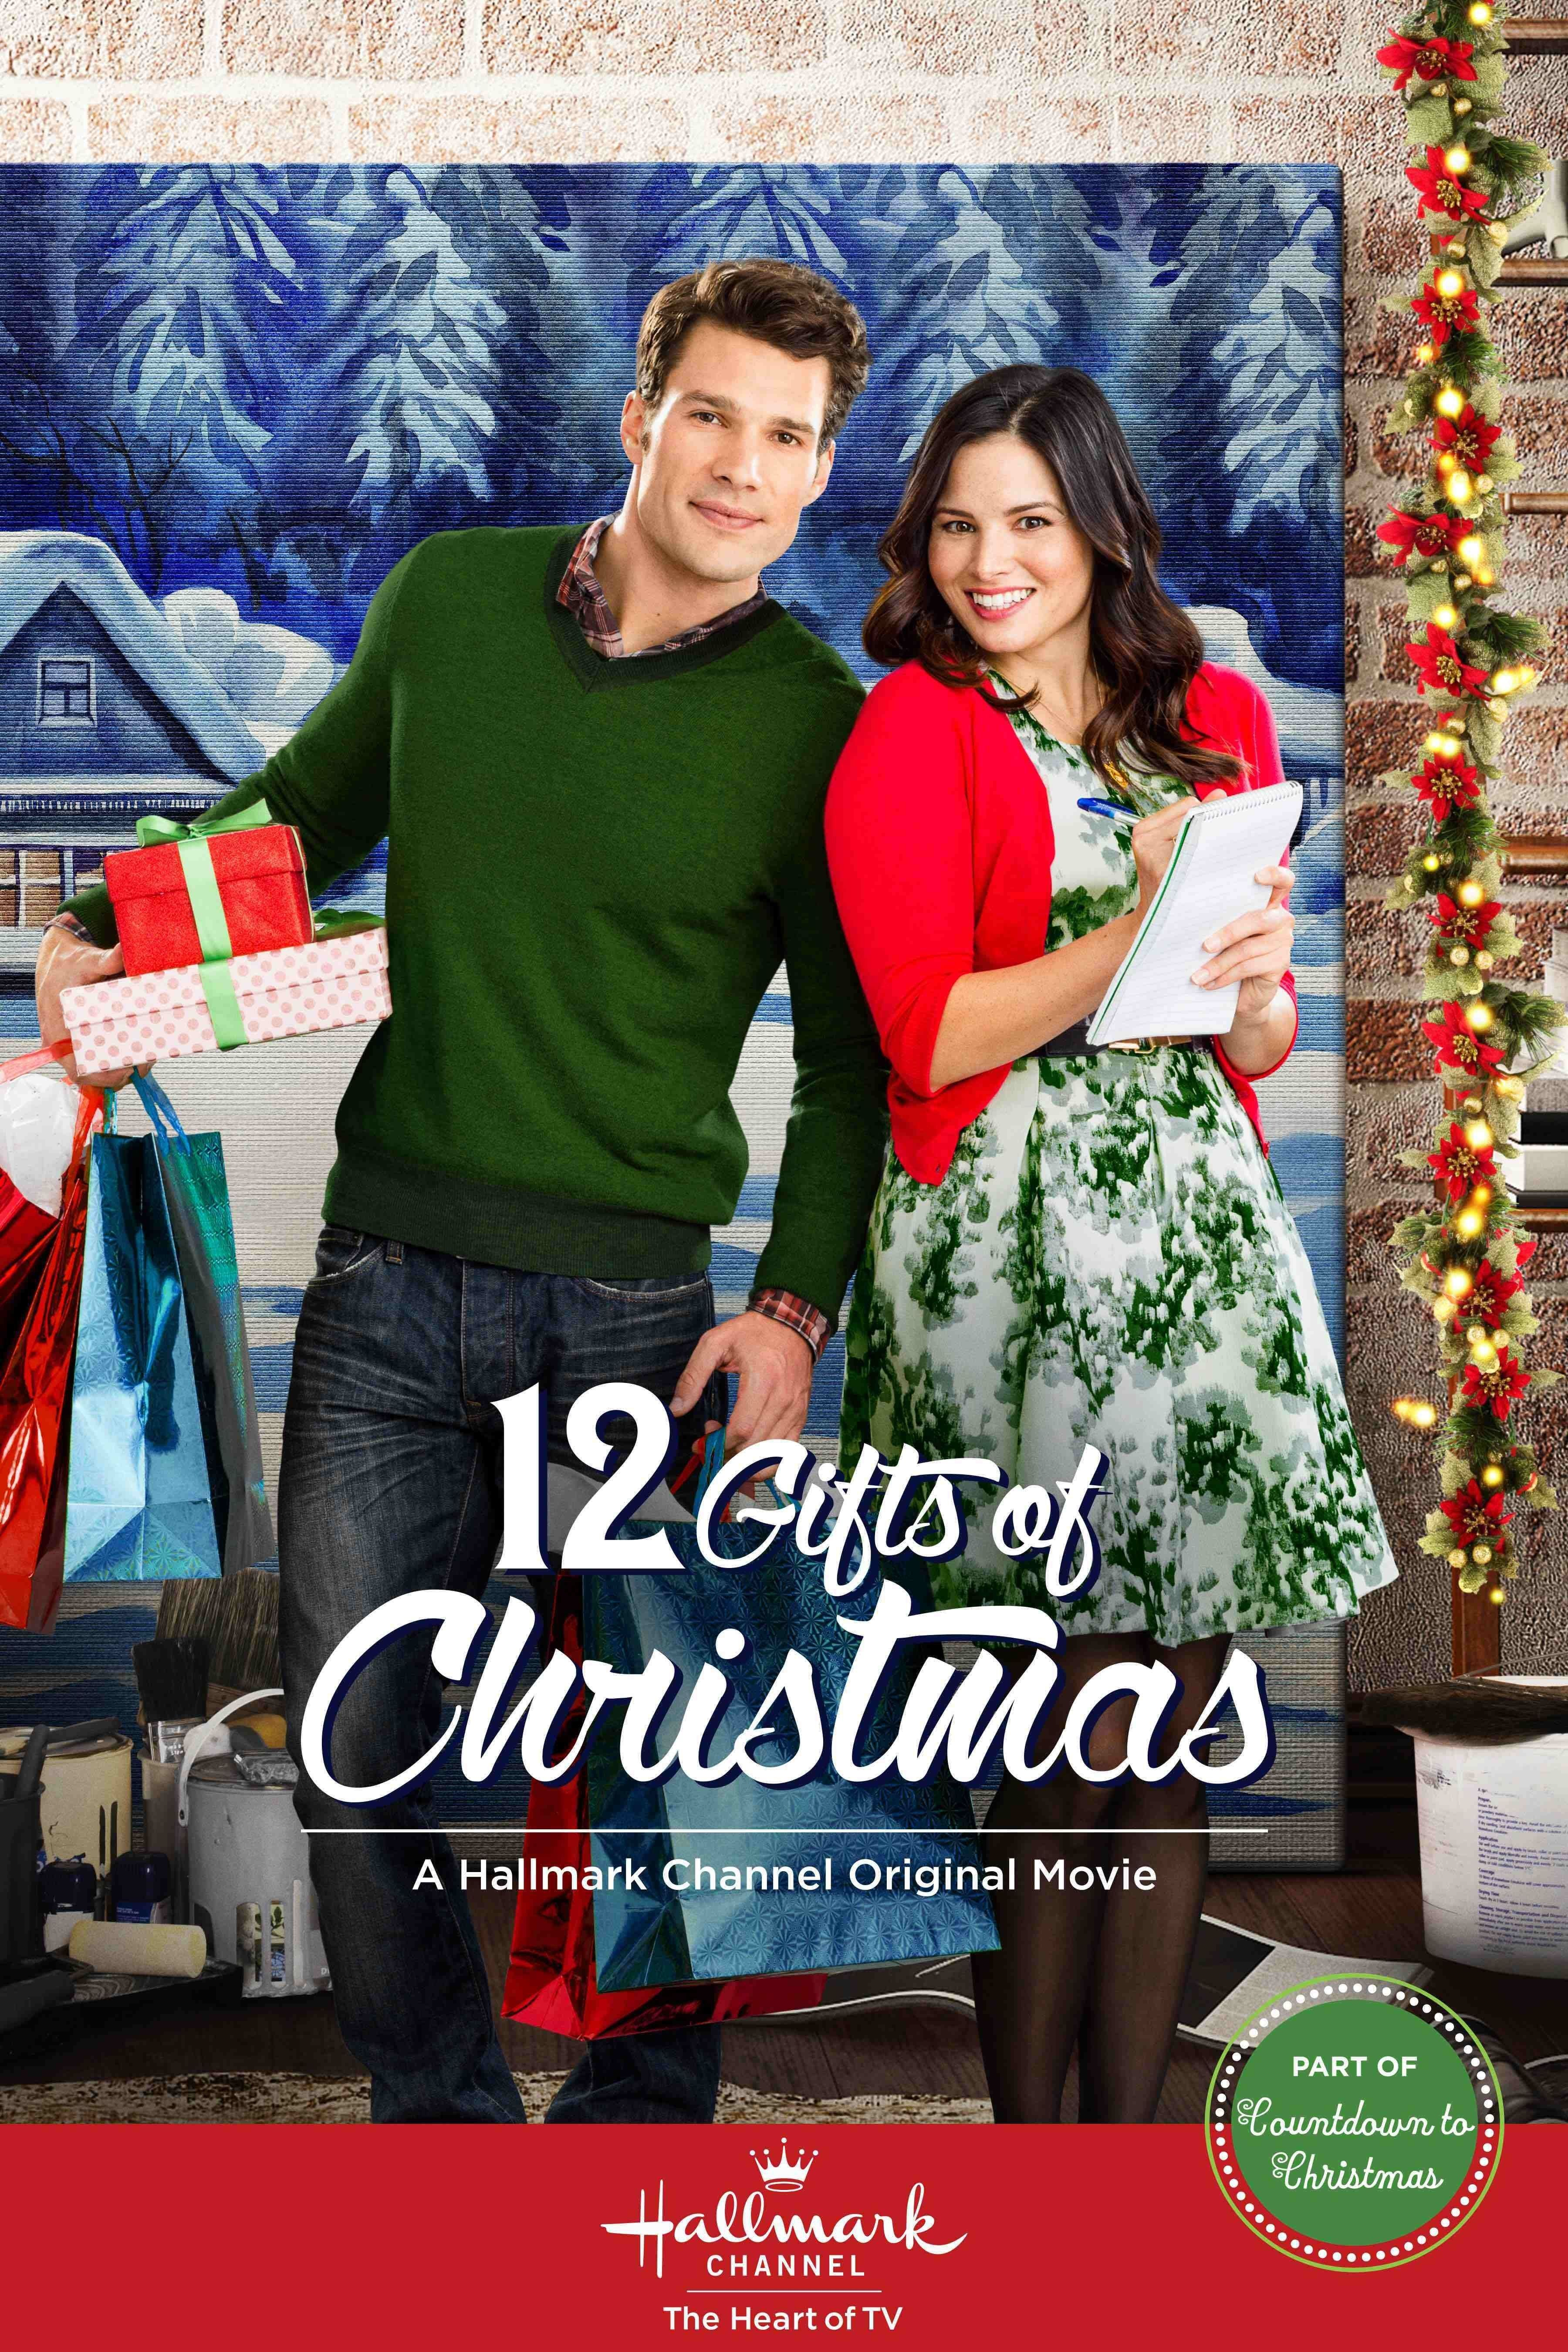 12 gifts of christmas movie posters